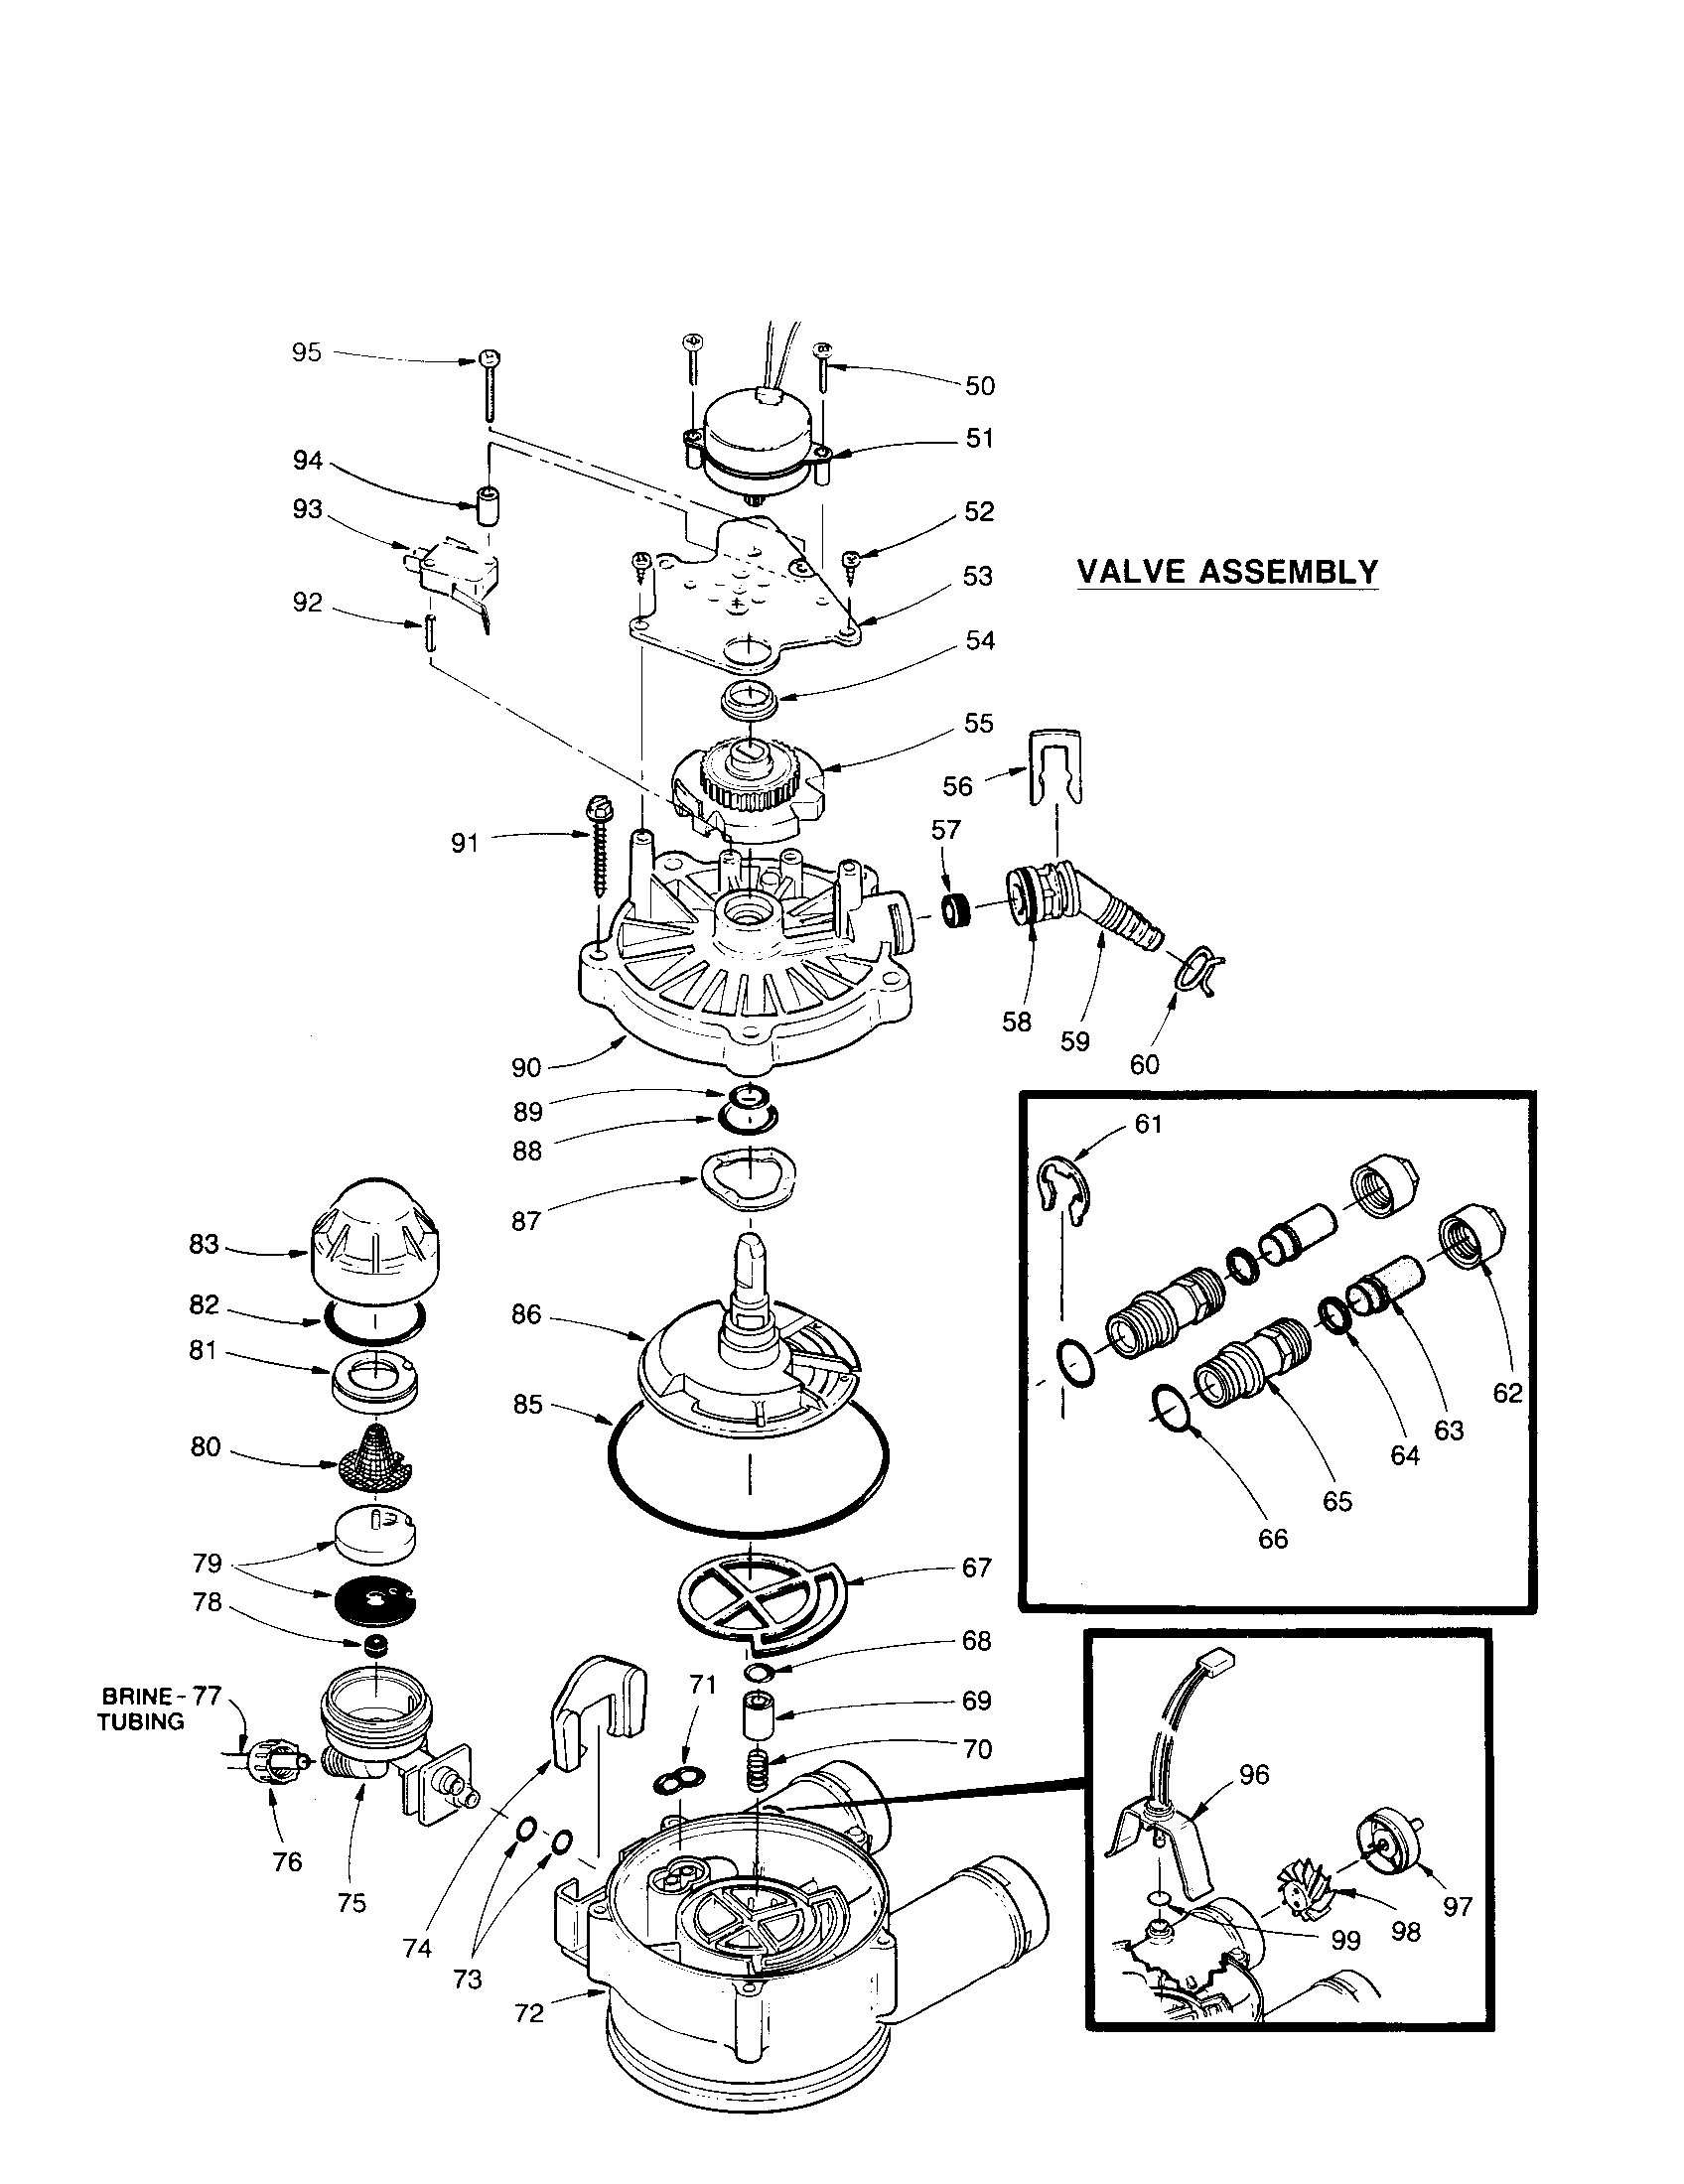 hight resolution of kenmore 625348450 valve assembly diagram